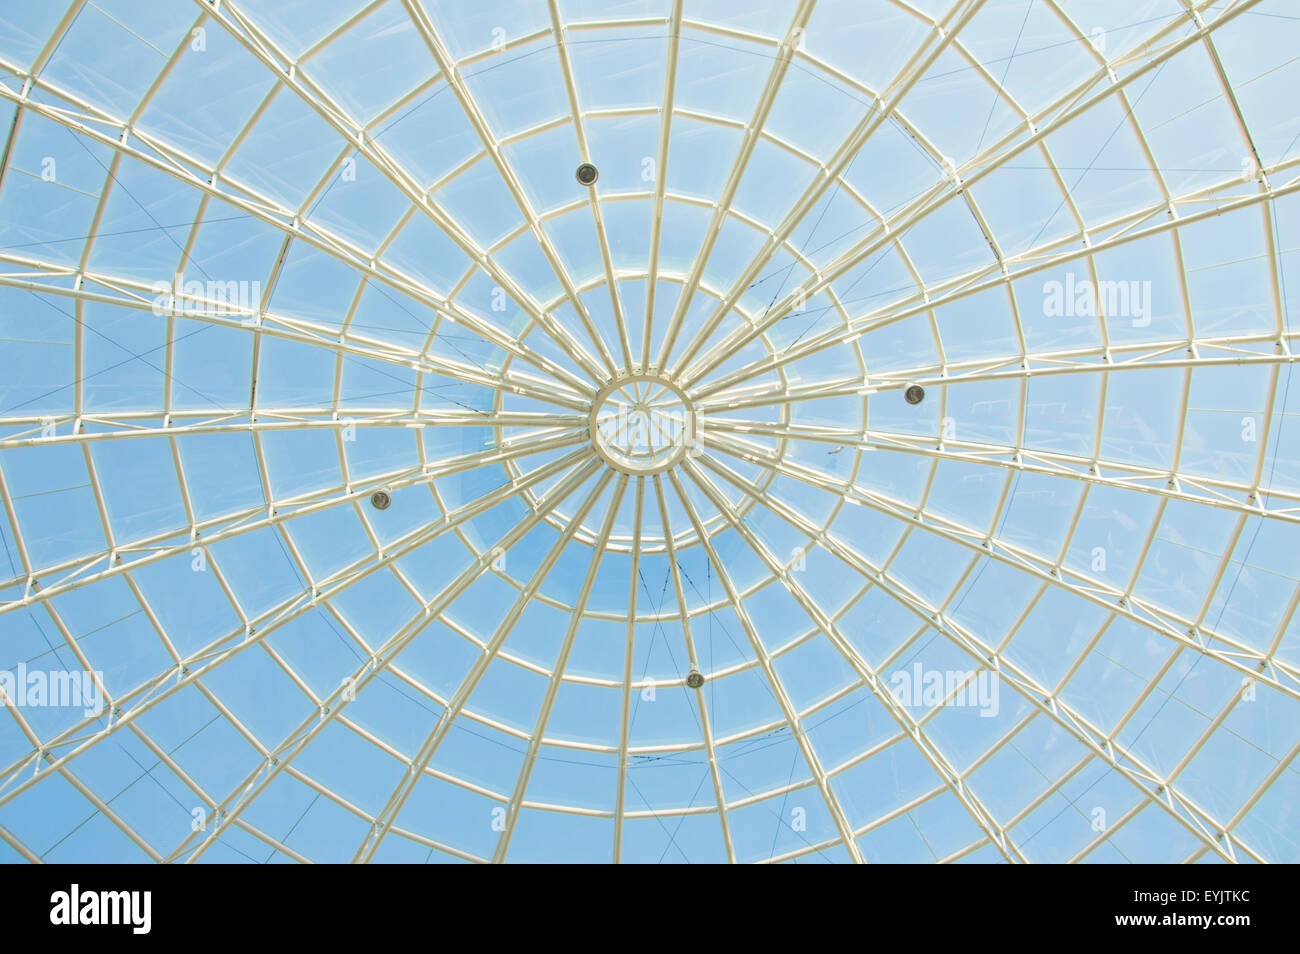 Spider Web Architecture - Stock Image